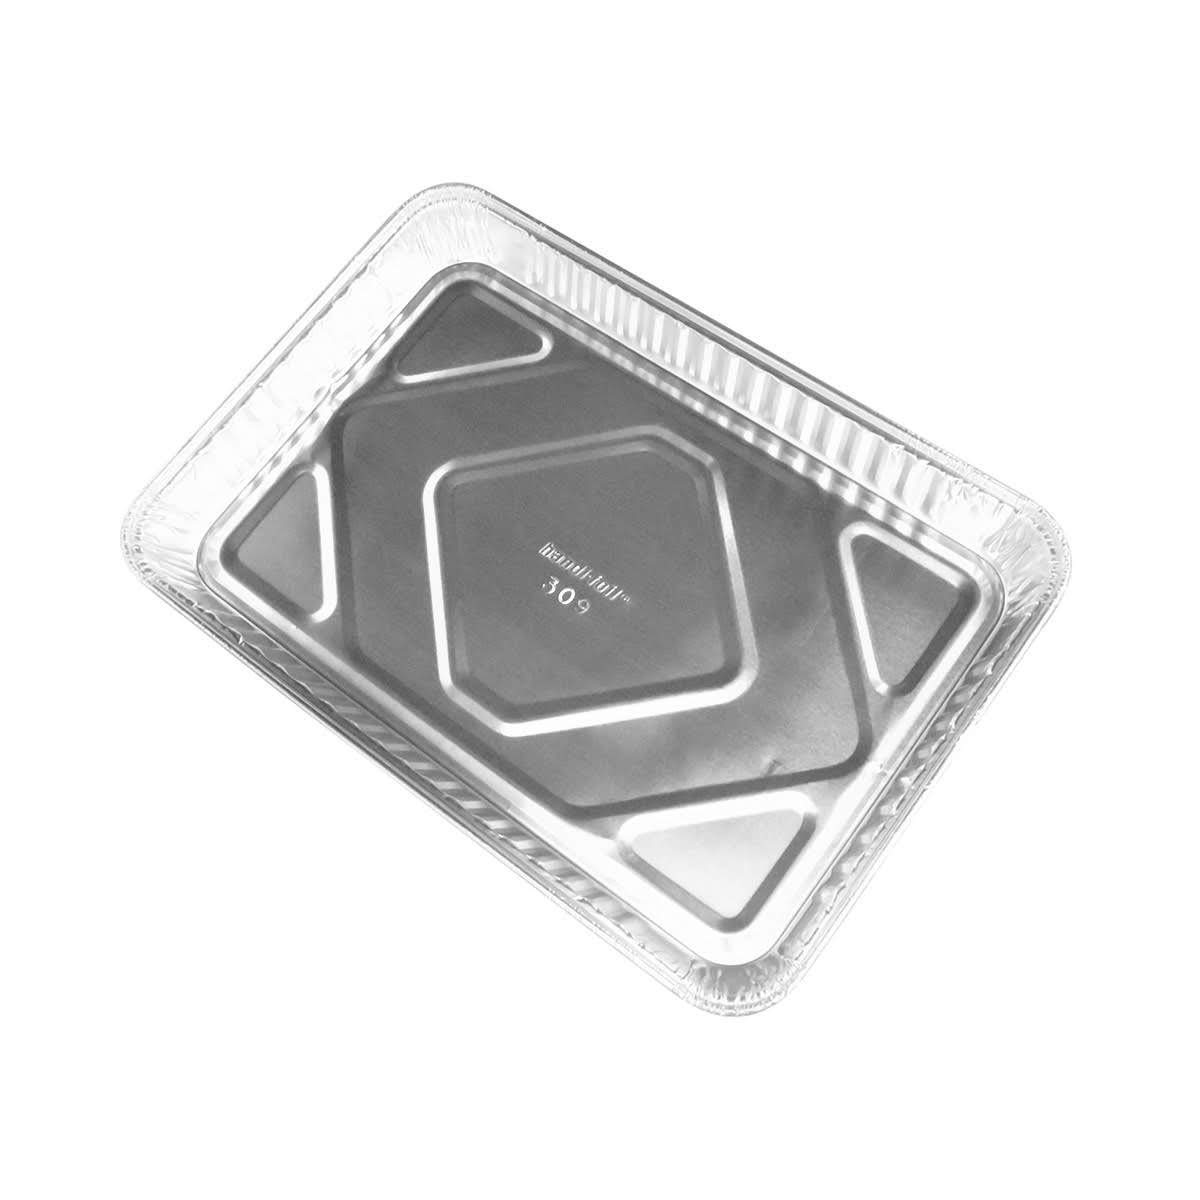 Handi-Foil Aluminum 1/4 Size Sheet Cake Pan, 100 units by Handi-Foil